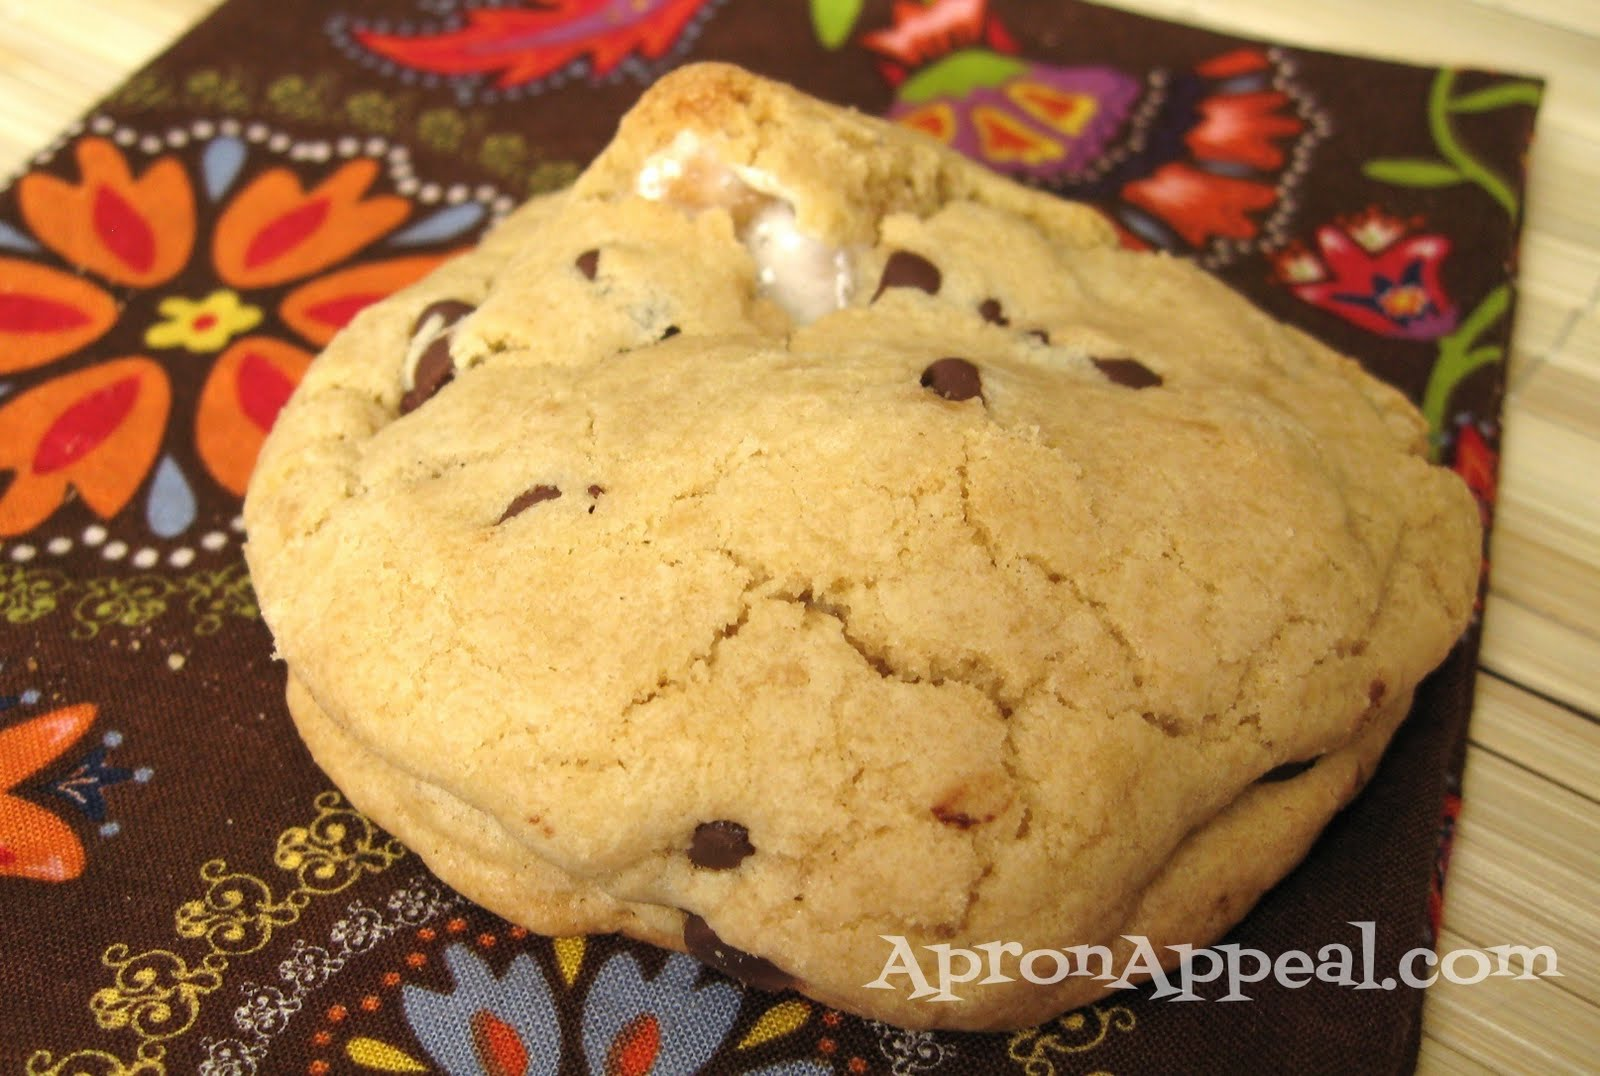 Apron Appeal: S'mores Stuffed Chocolate Chip Cookies